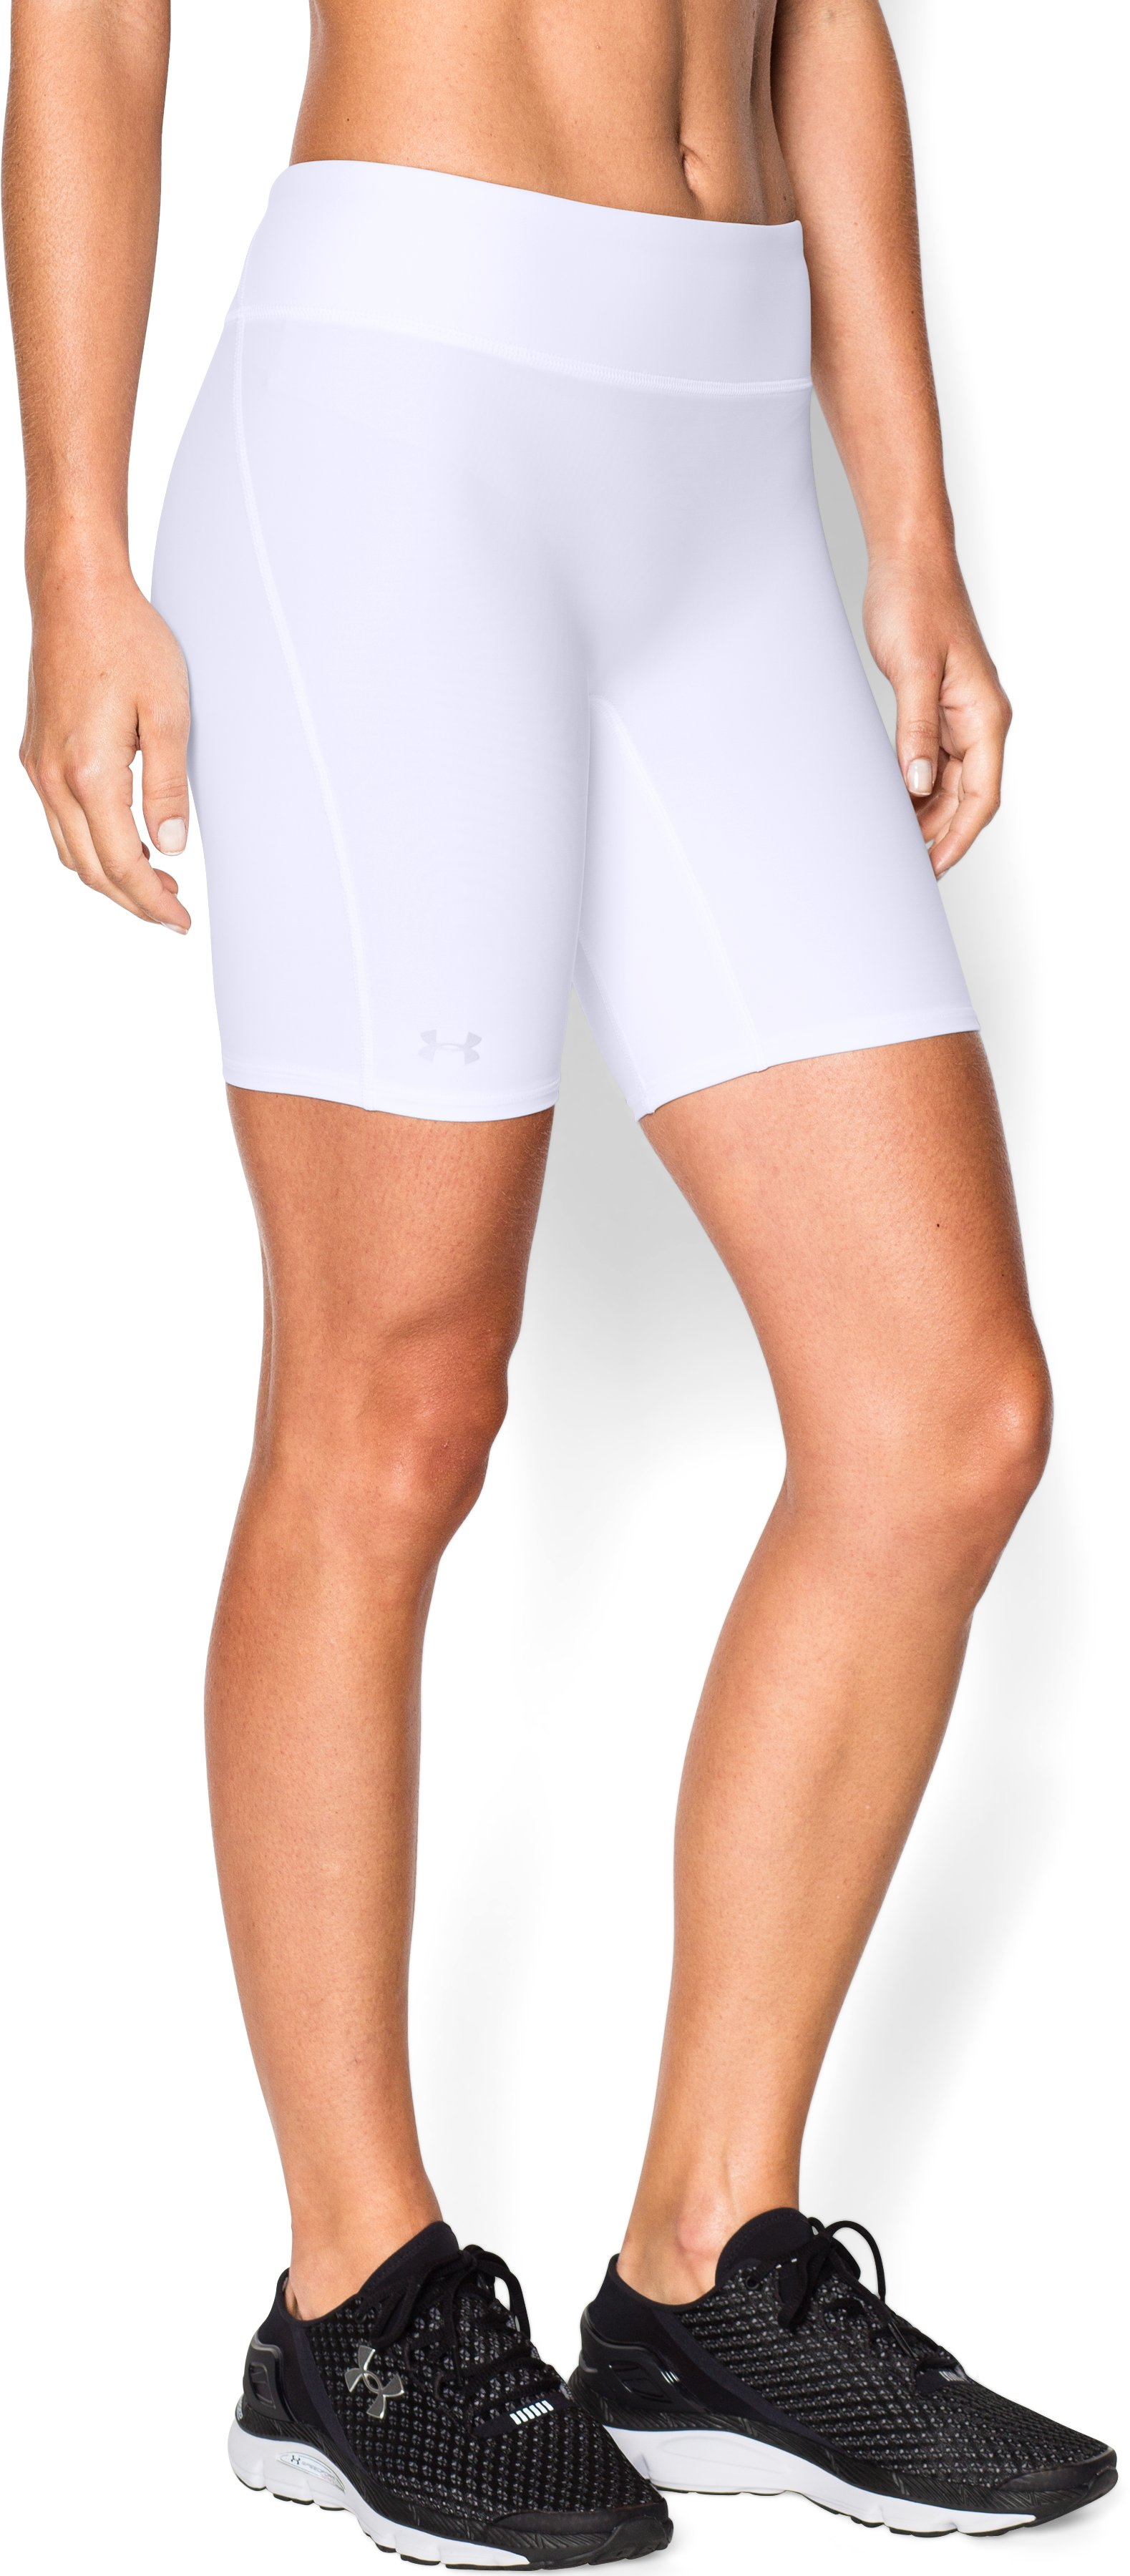 "white shorts Women's UA Authentic 7"" Compression Shorts Also, the small fit well in the <strong>white</strong>."